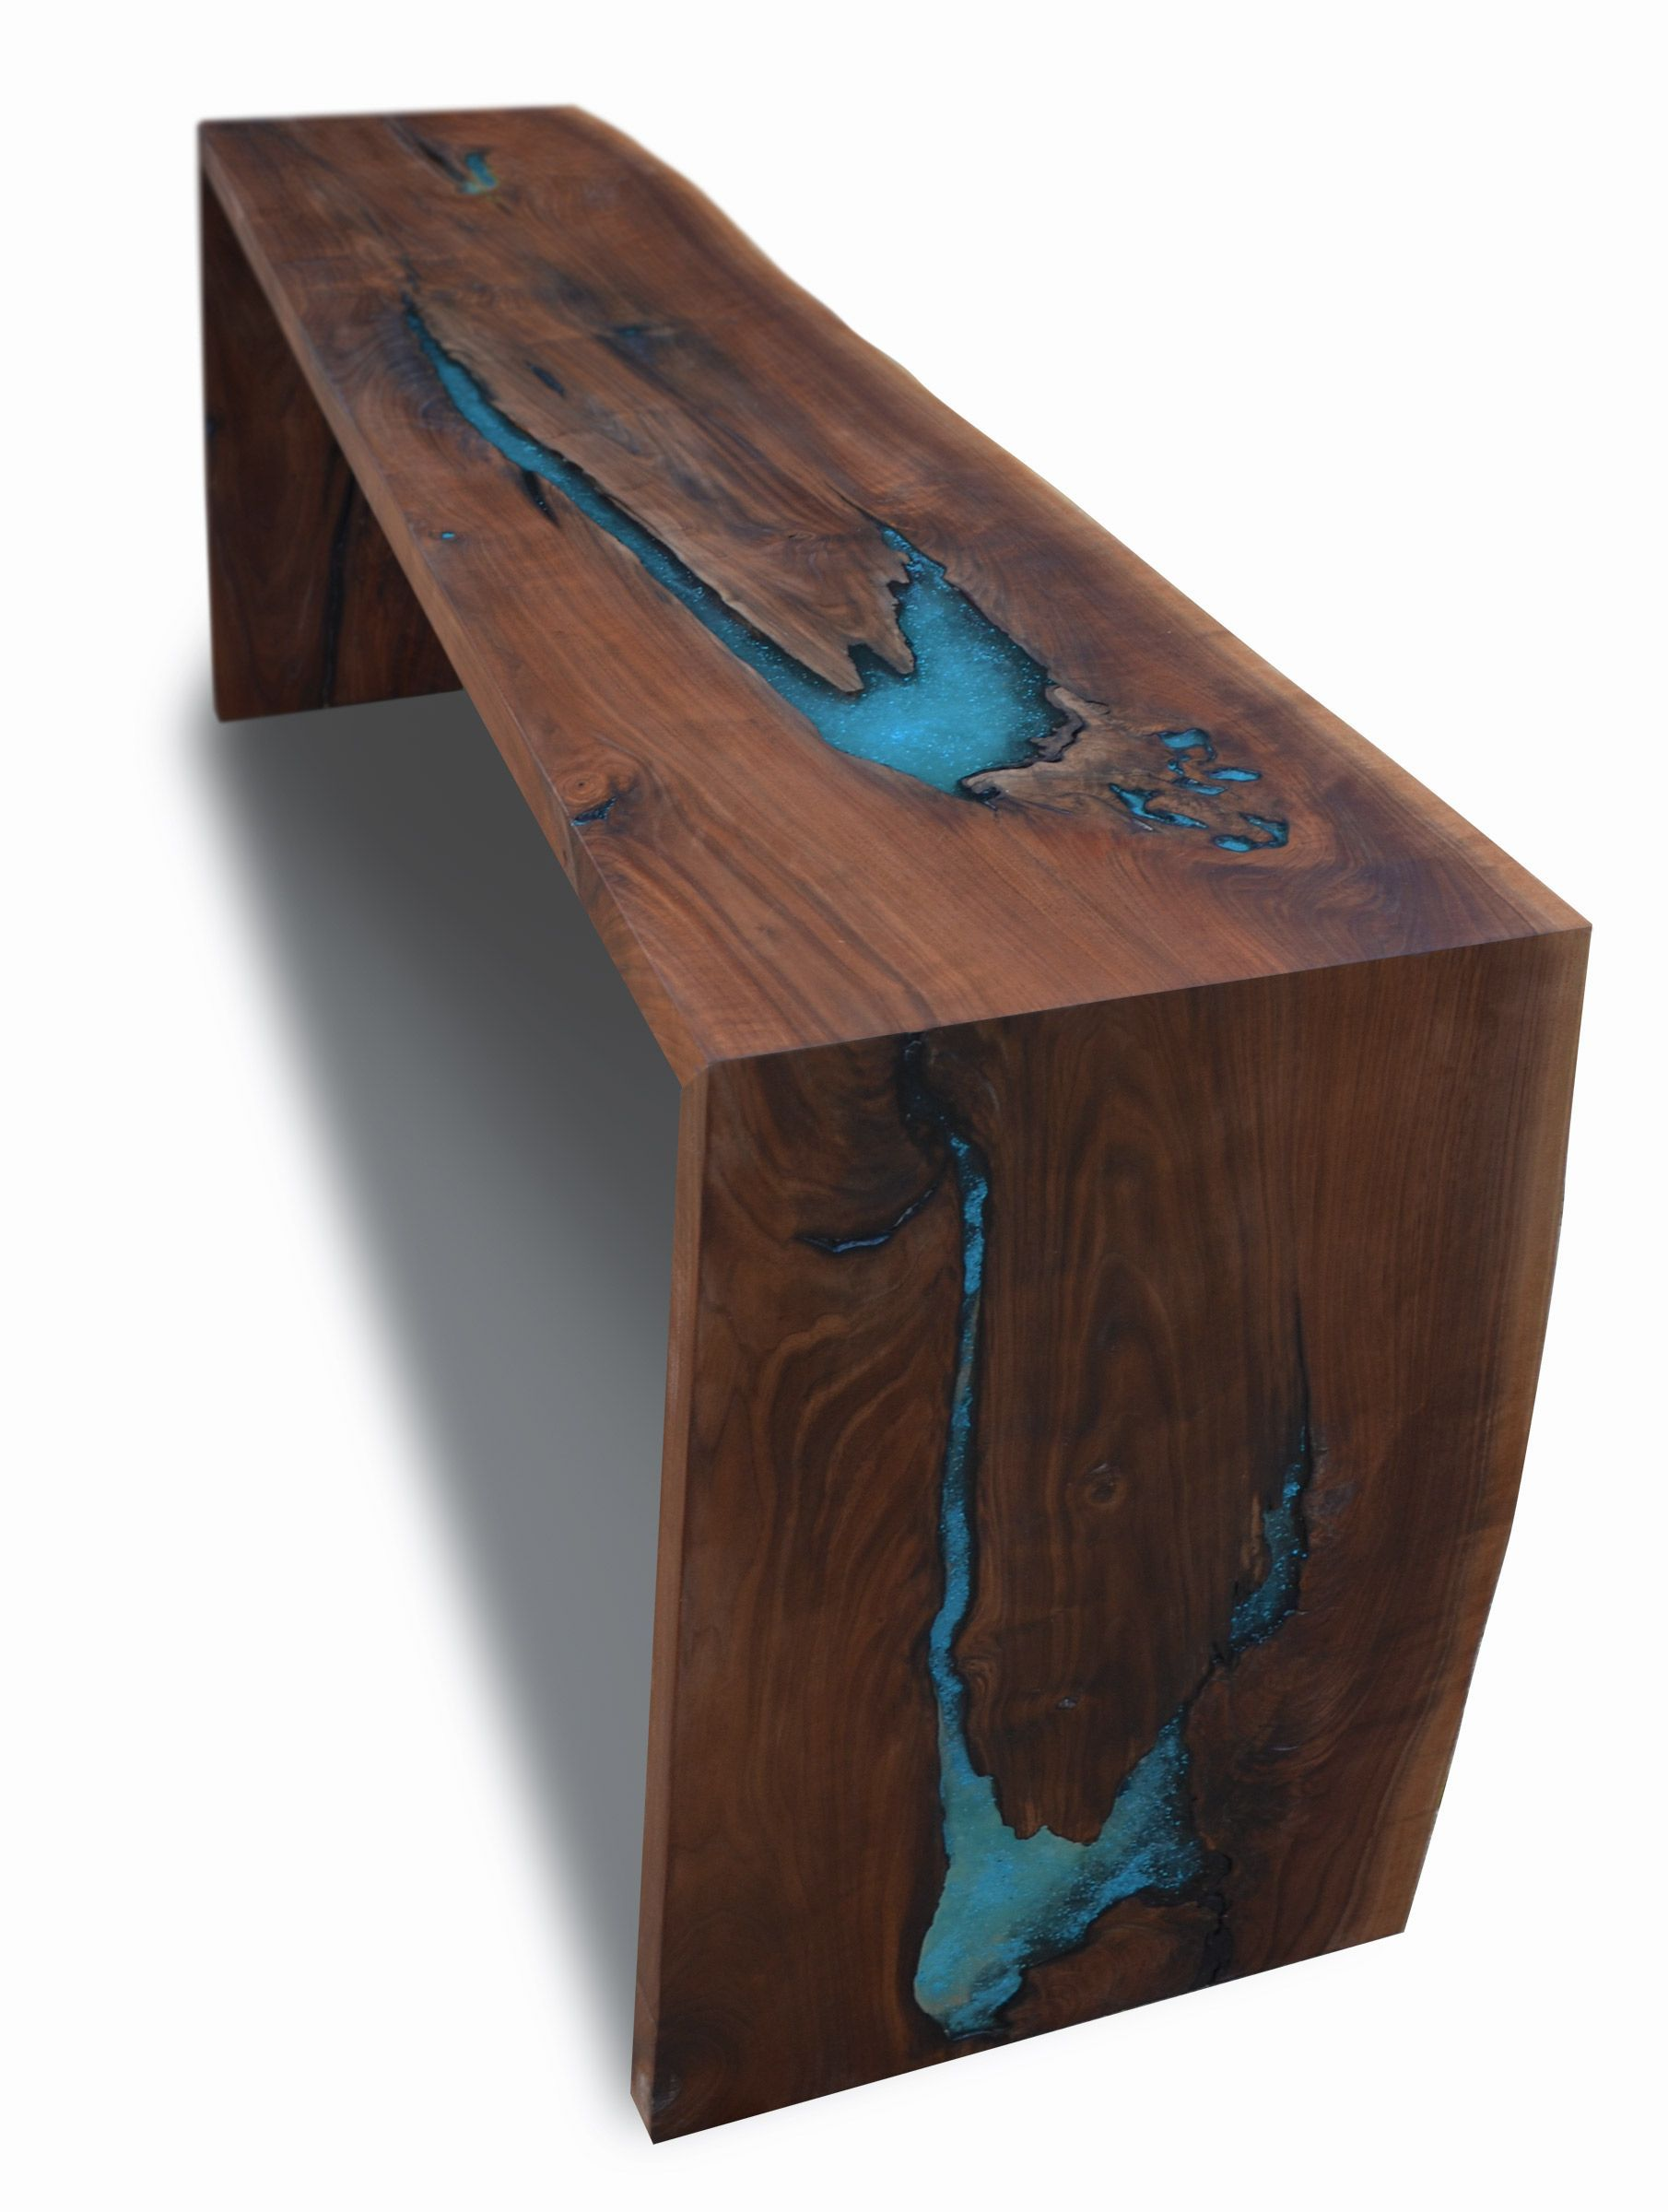 Western red cedar table top western red cedar live edge table top - Coffee Table Custom Made Live Edge Walnut Epoxy Resin Turquoise Inlay Dining Console